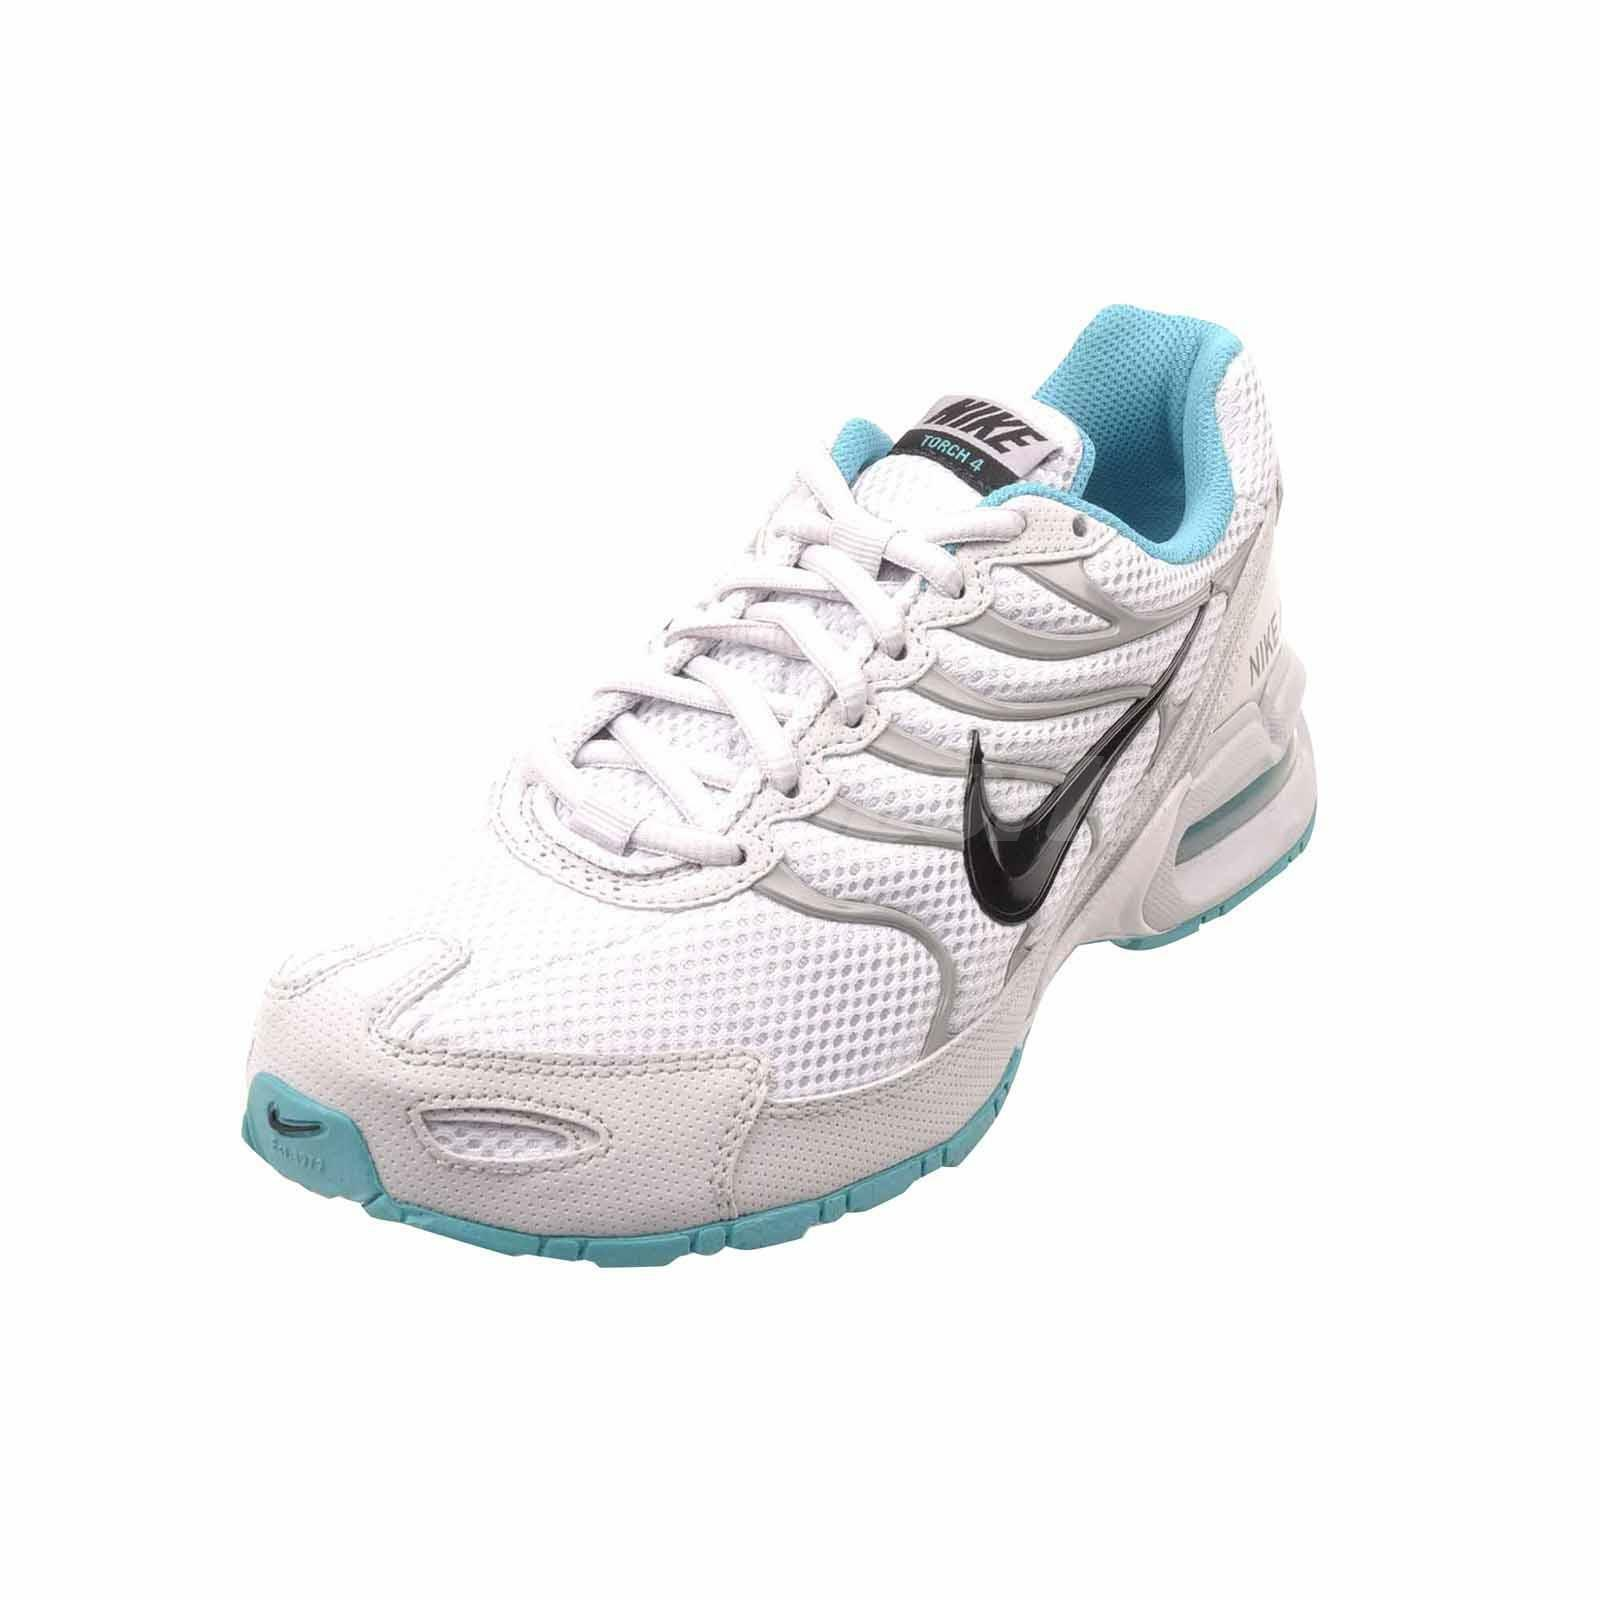 detailing ef0db a0d55 ... NWT Women s Nike Air Max Torch 4 4 4 Running shoes White Turq 343851  009 Wh ...